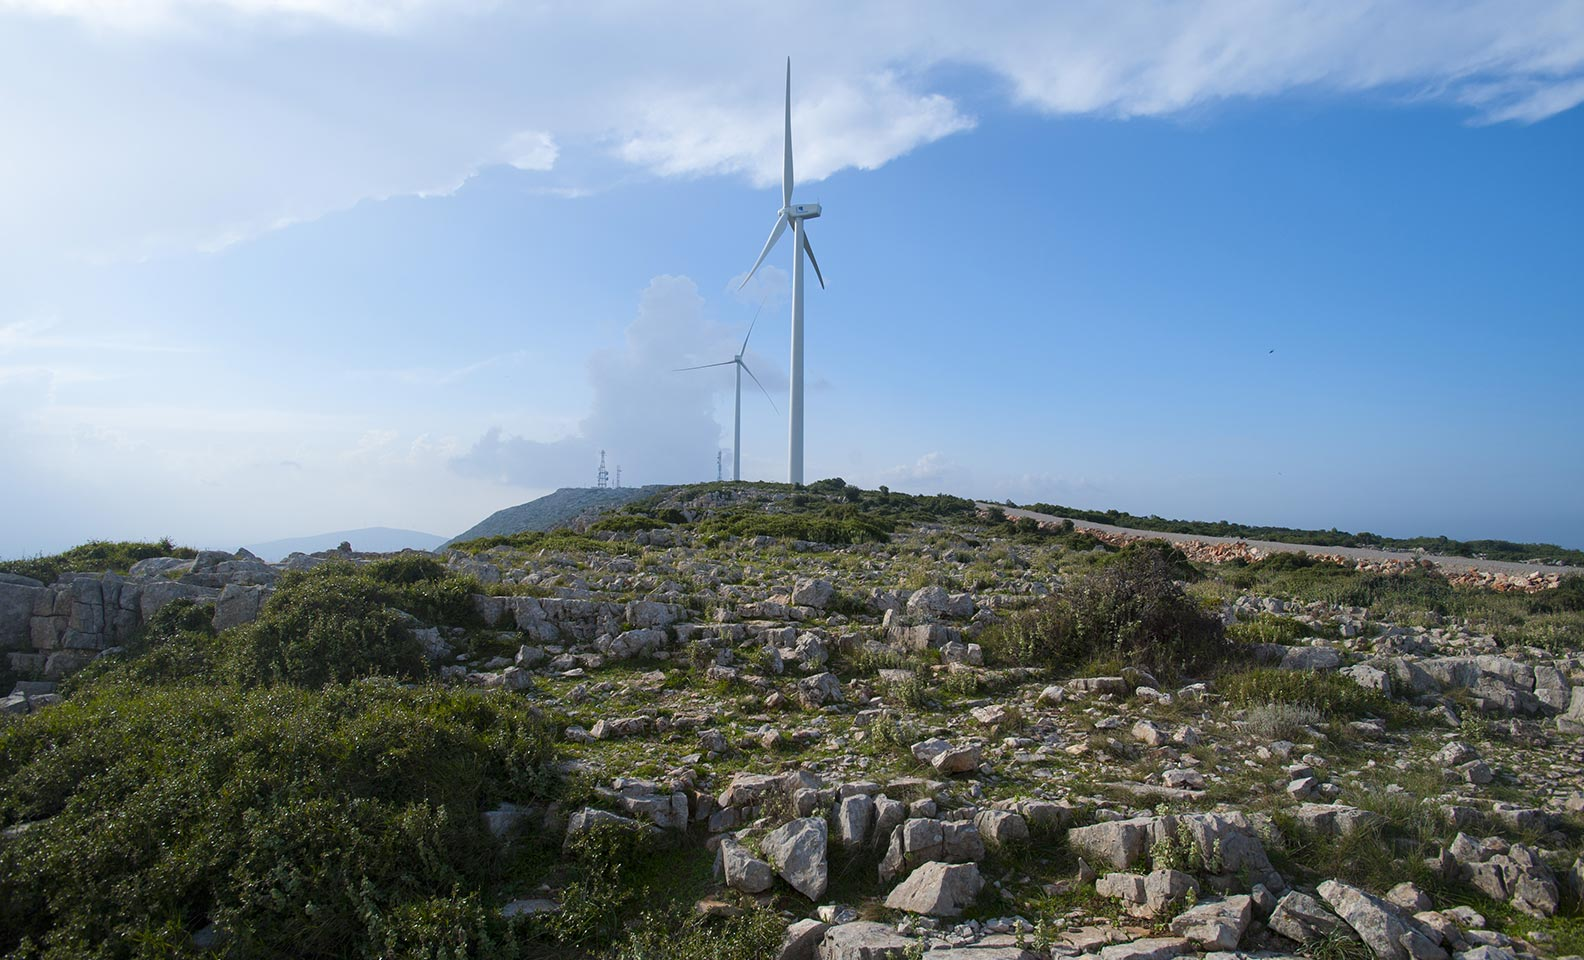 Series of wind turbines in the mountains